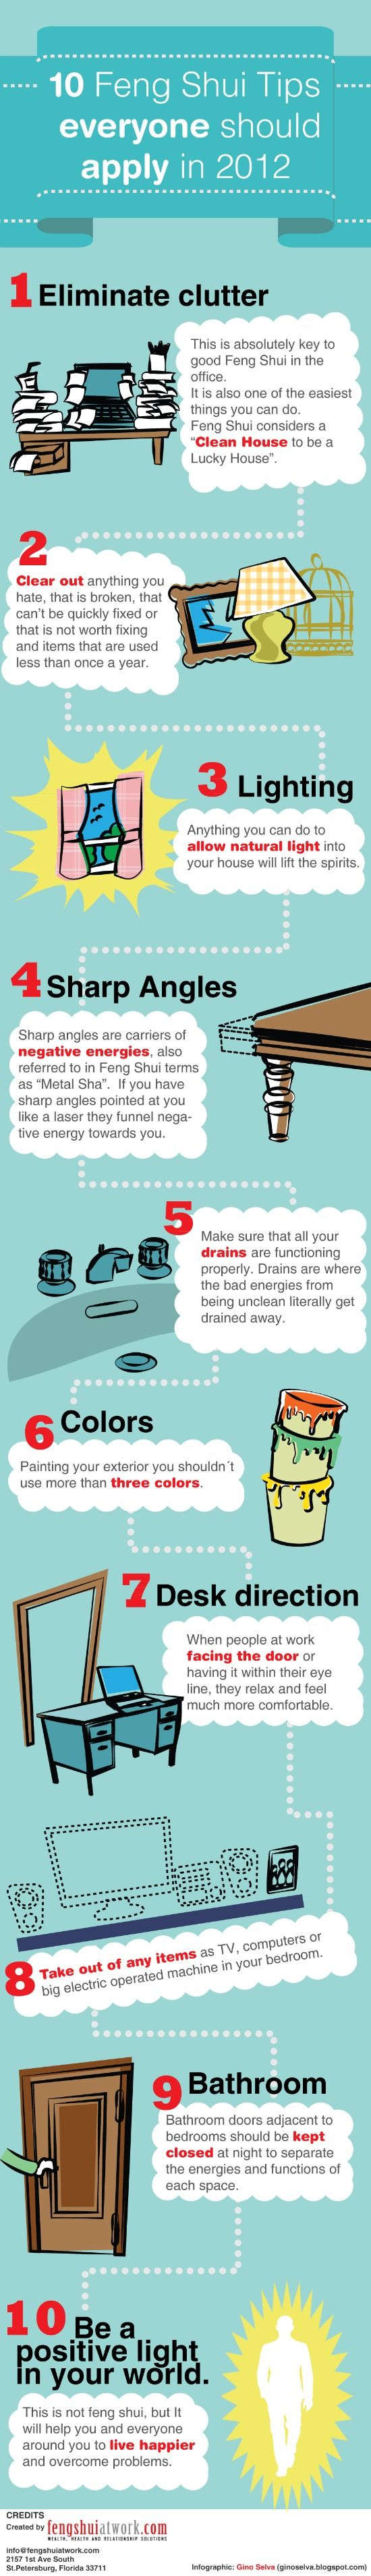 10 Feng Shui Tips [infographic]